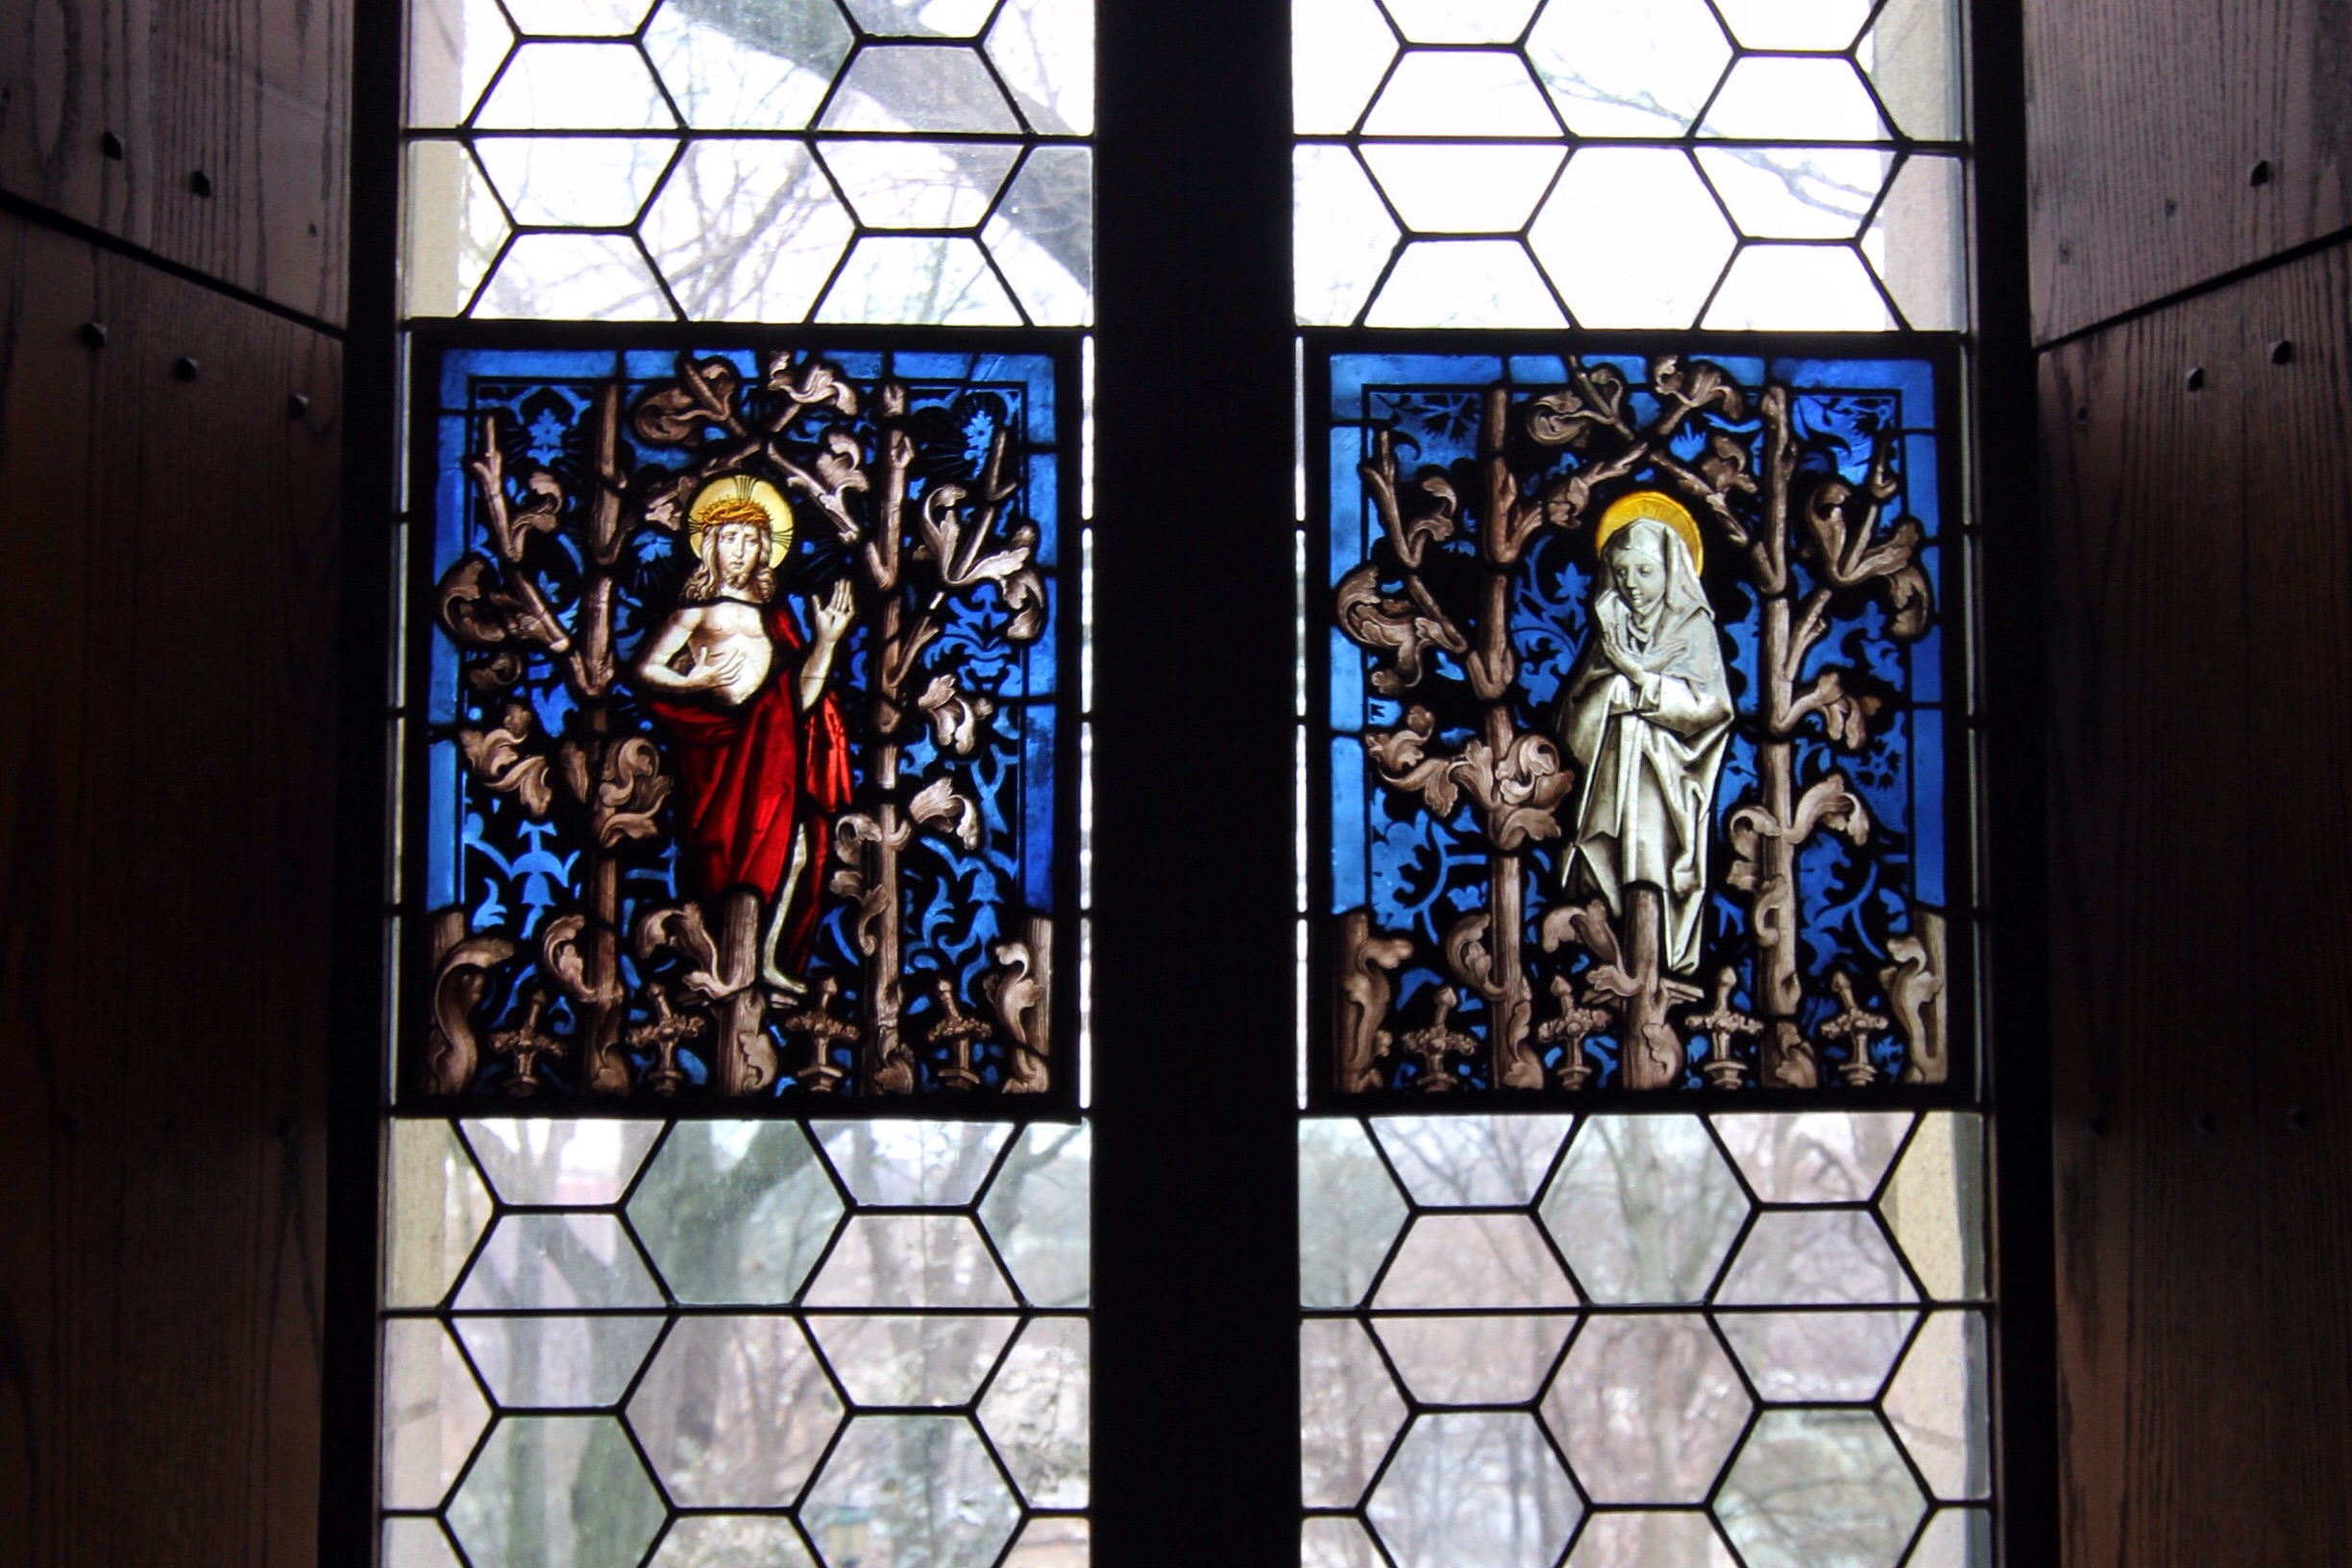 Stained glass at the Cloisters.